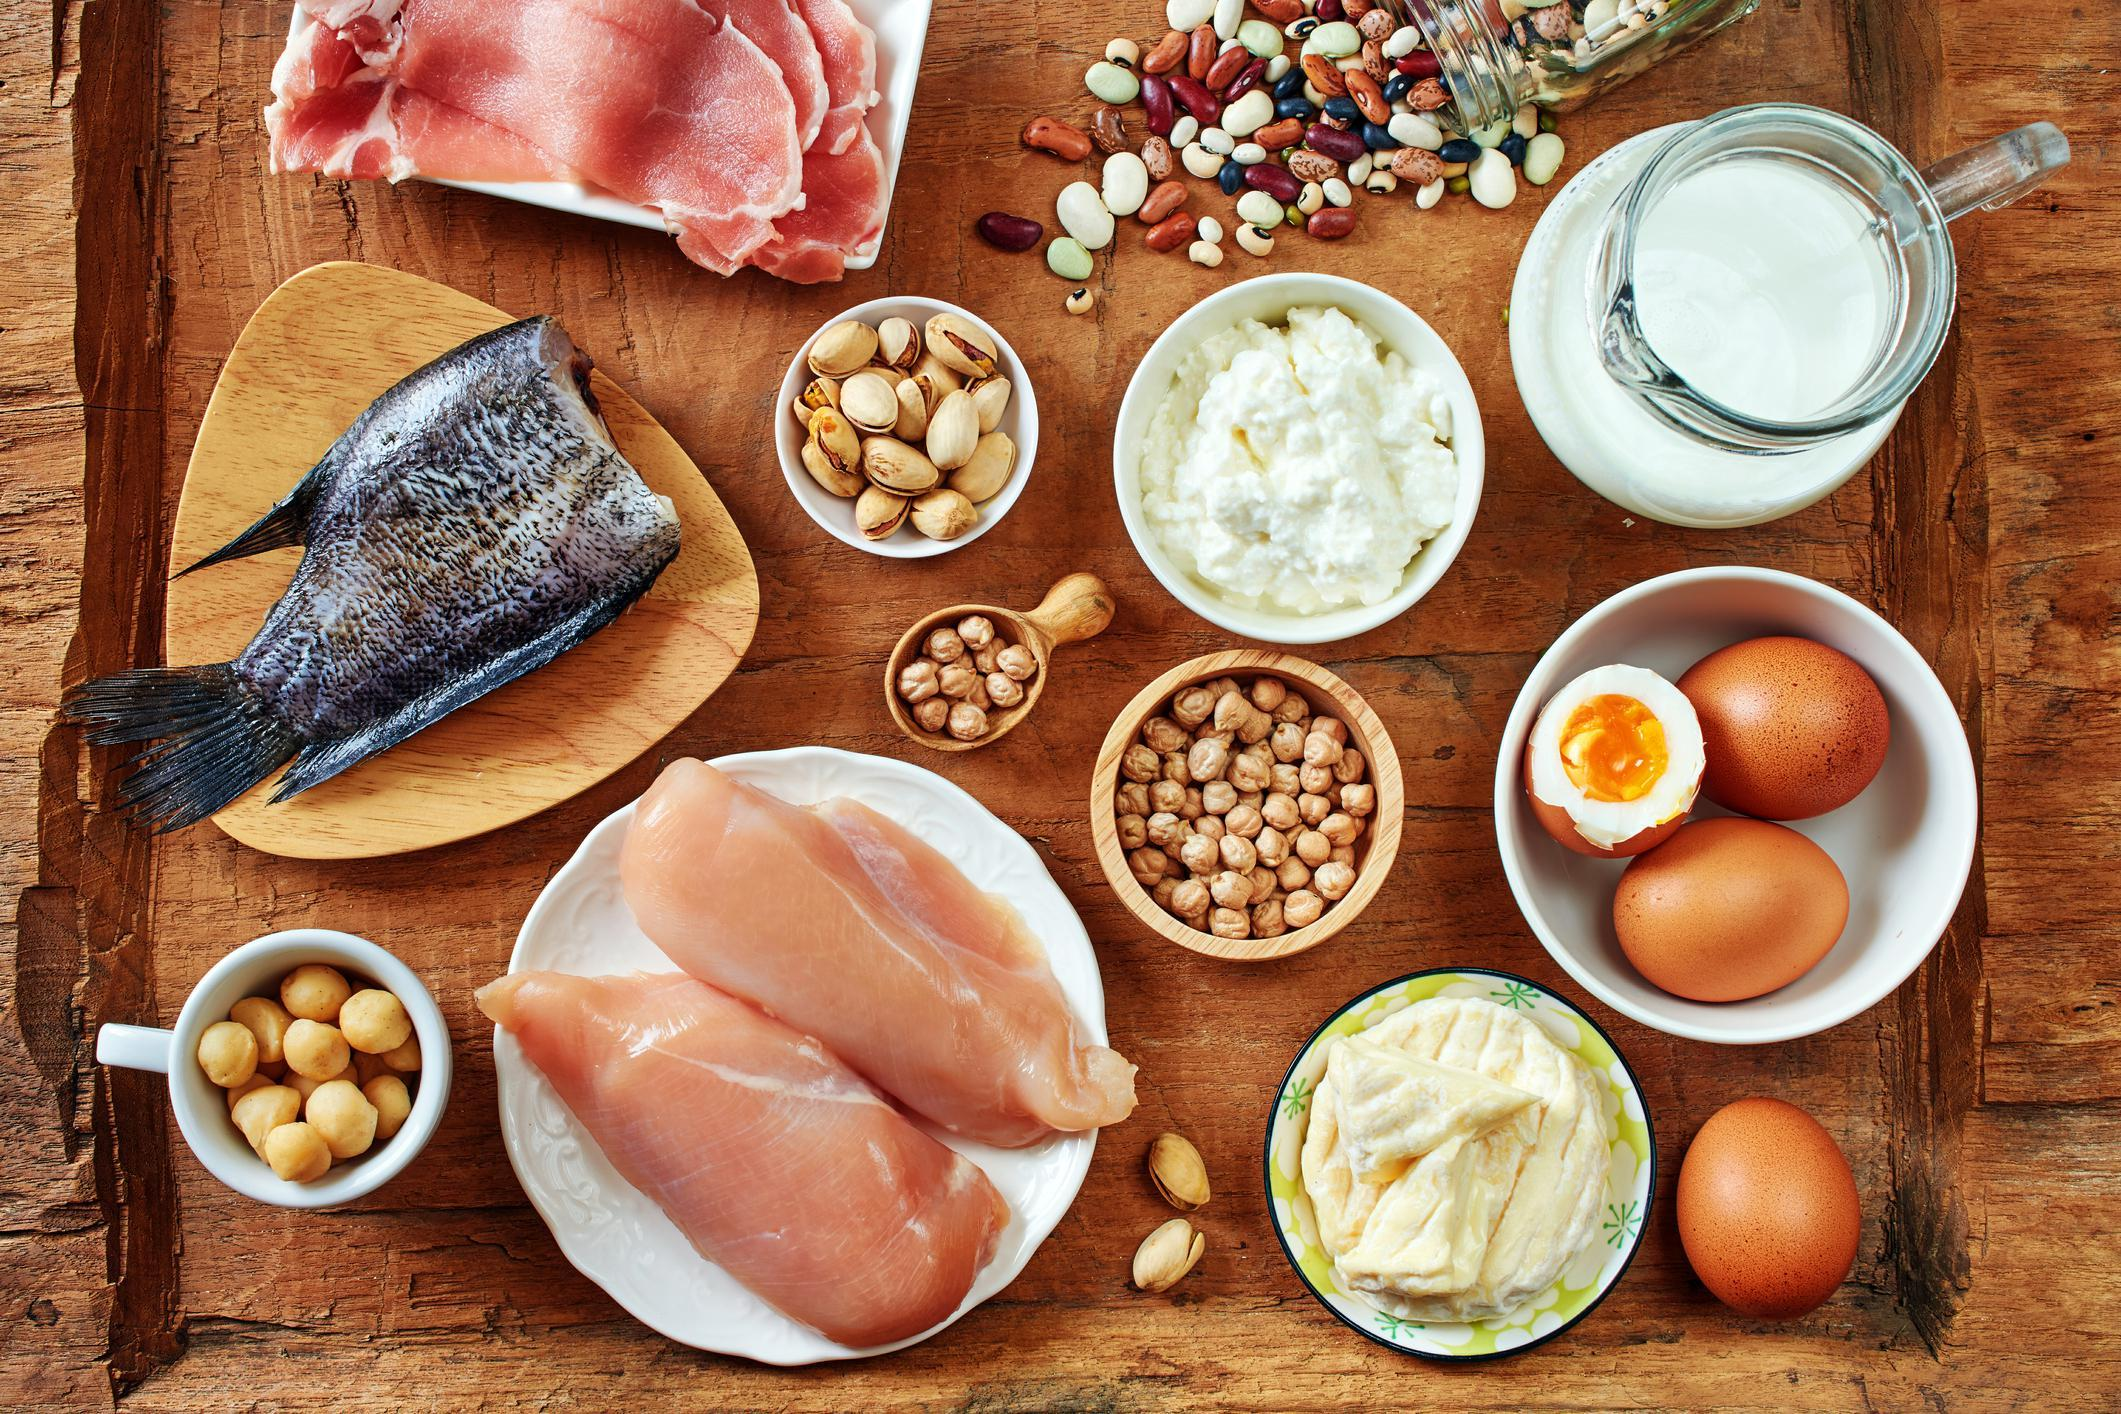 Subtle Signs You Need to Eat More Protein